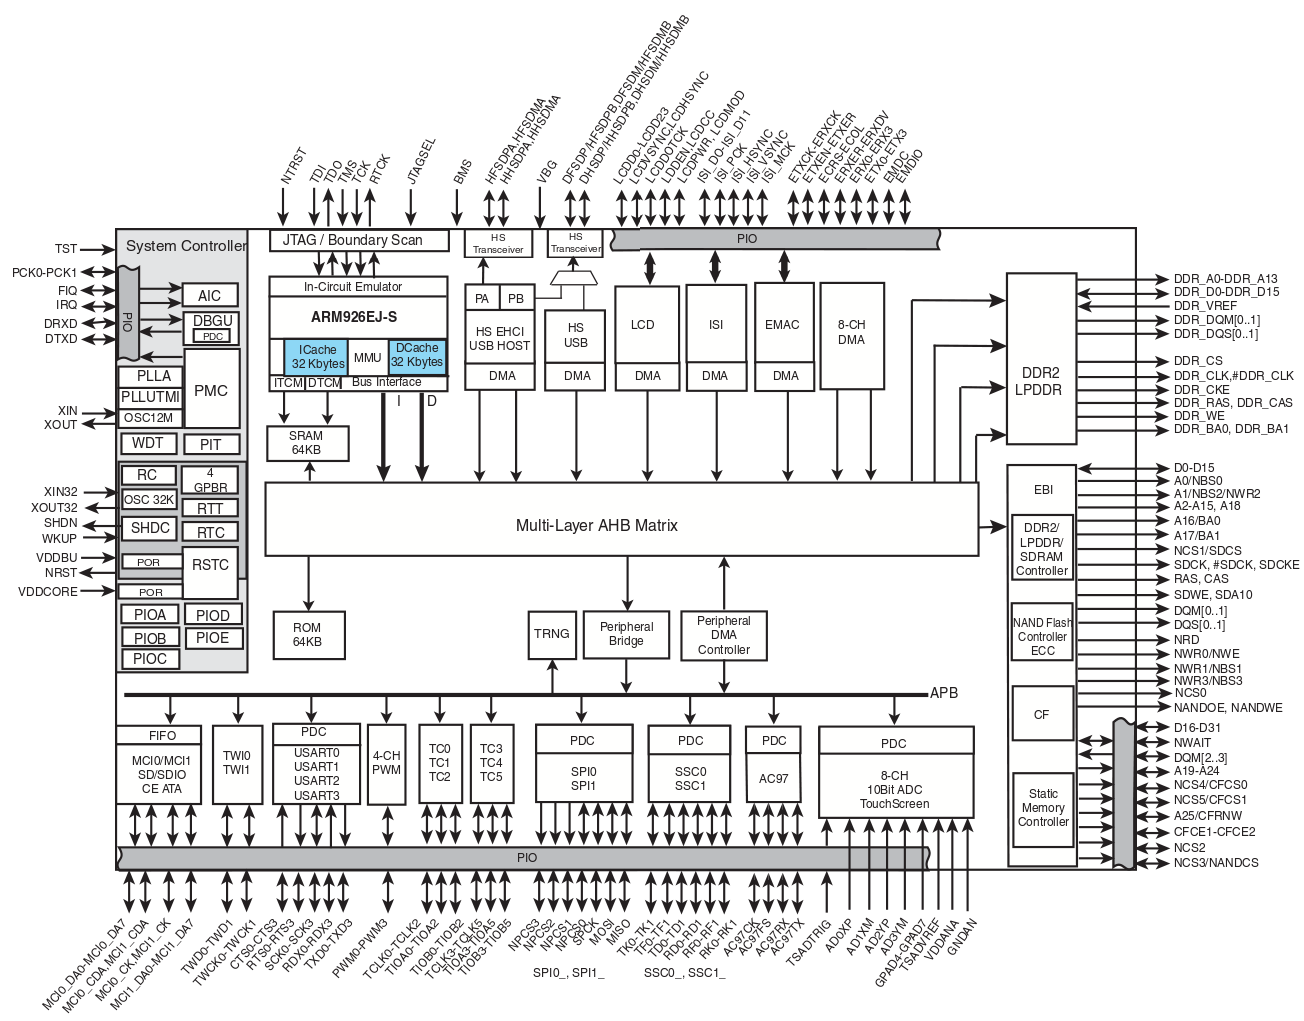 Part ii cst soc dm slide pack sg3 soc parts busses soc the sam9645 integrates a 400 mhz arm core and a large number of dma capable peripheral controllers using a central bus matrix pdf datasheet pooptronica